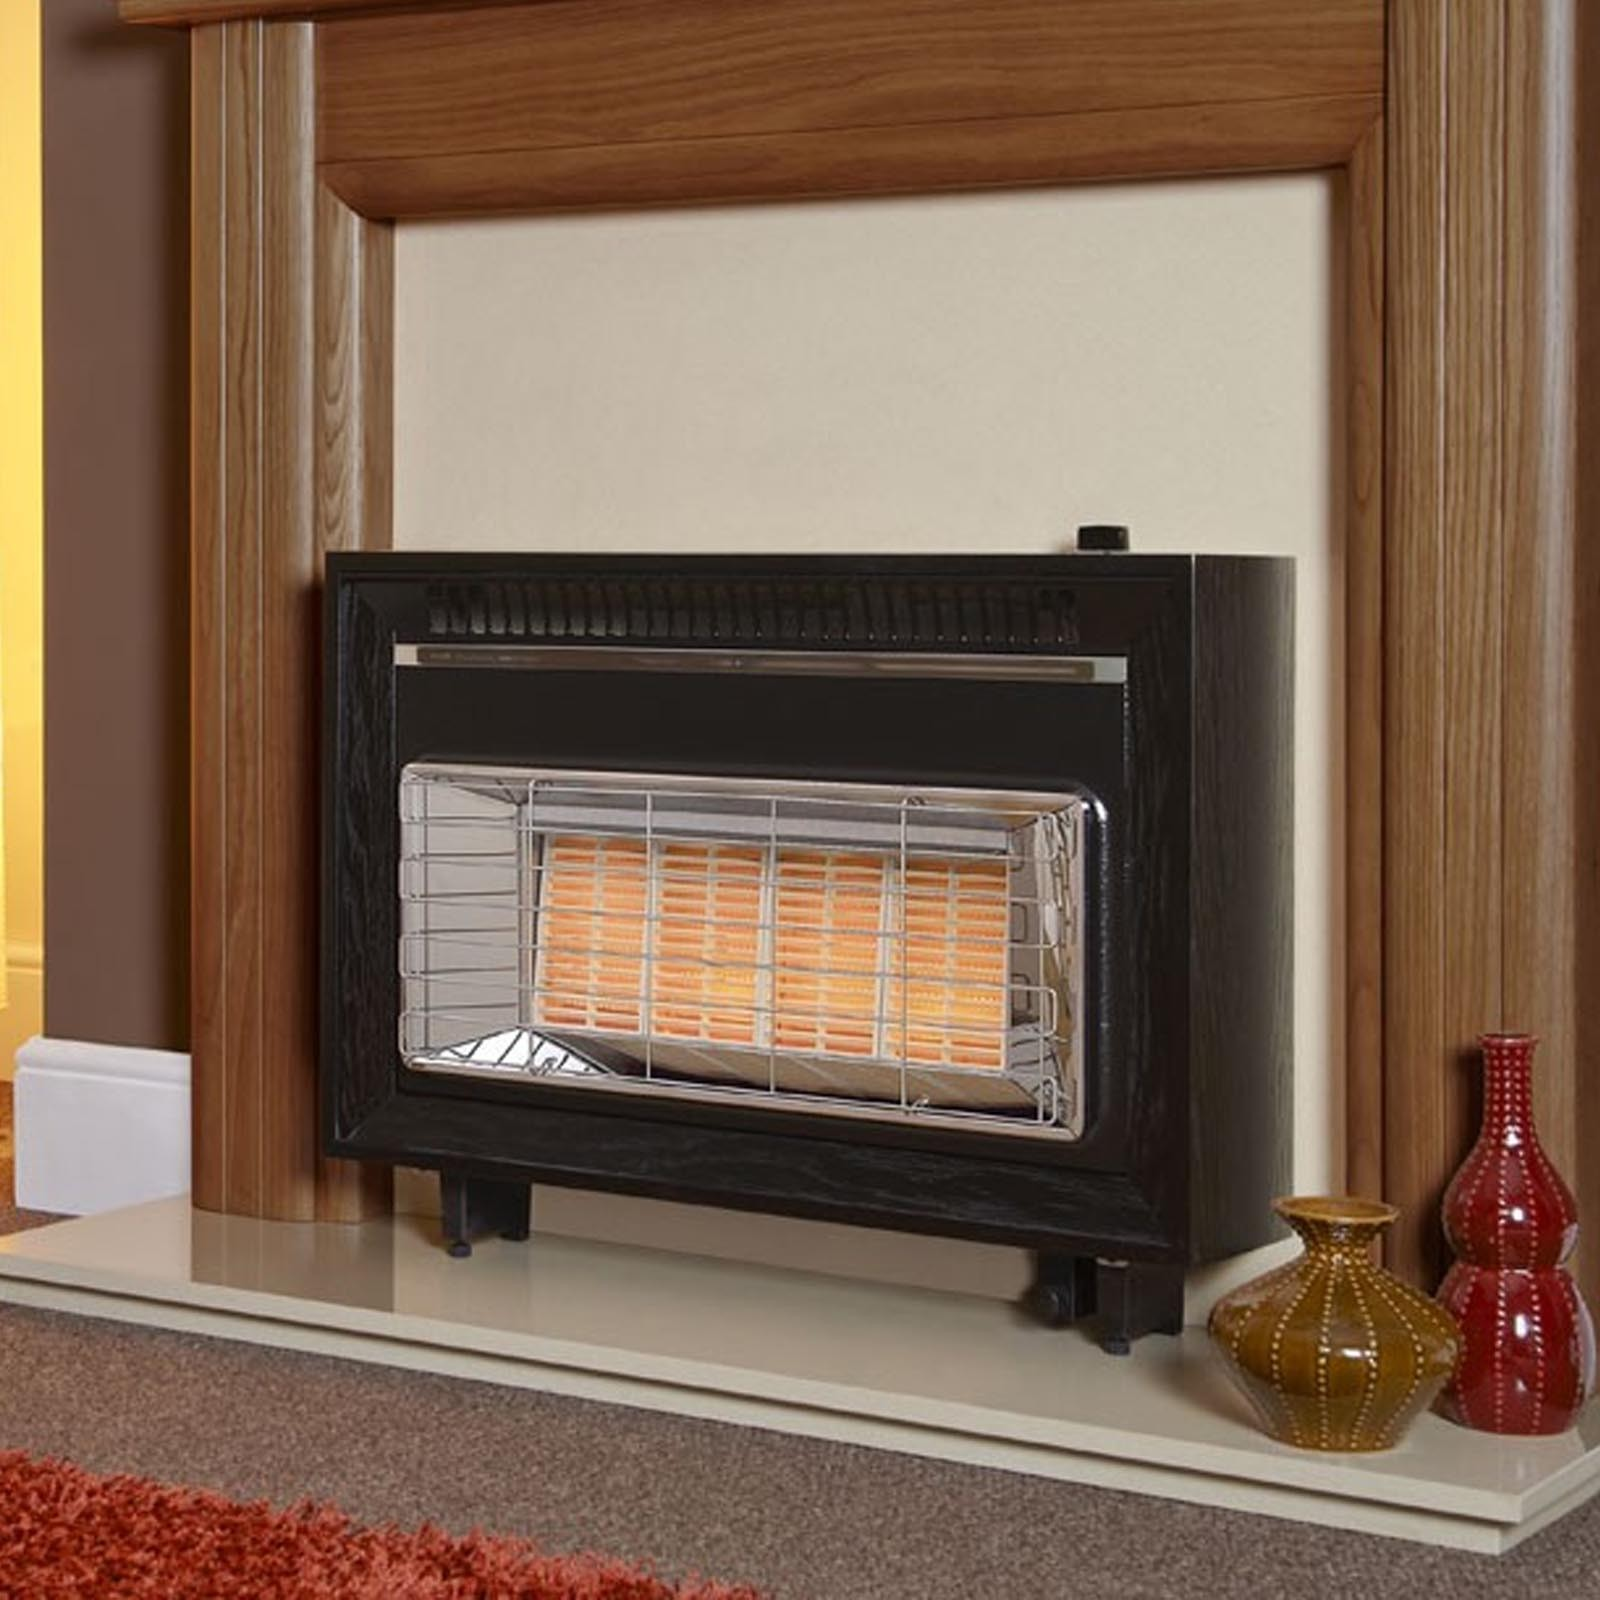 high efficiency wood burning fireplace. Flavel Misermatic Black High Efficiency Gas Fire Wood Burning Fireplace A